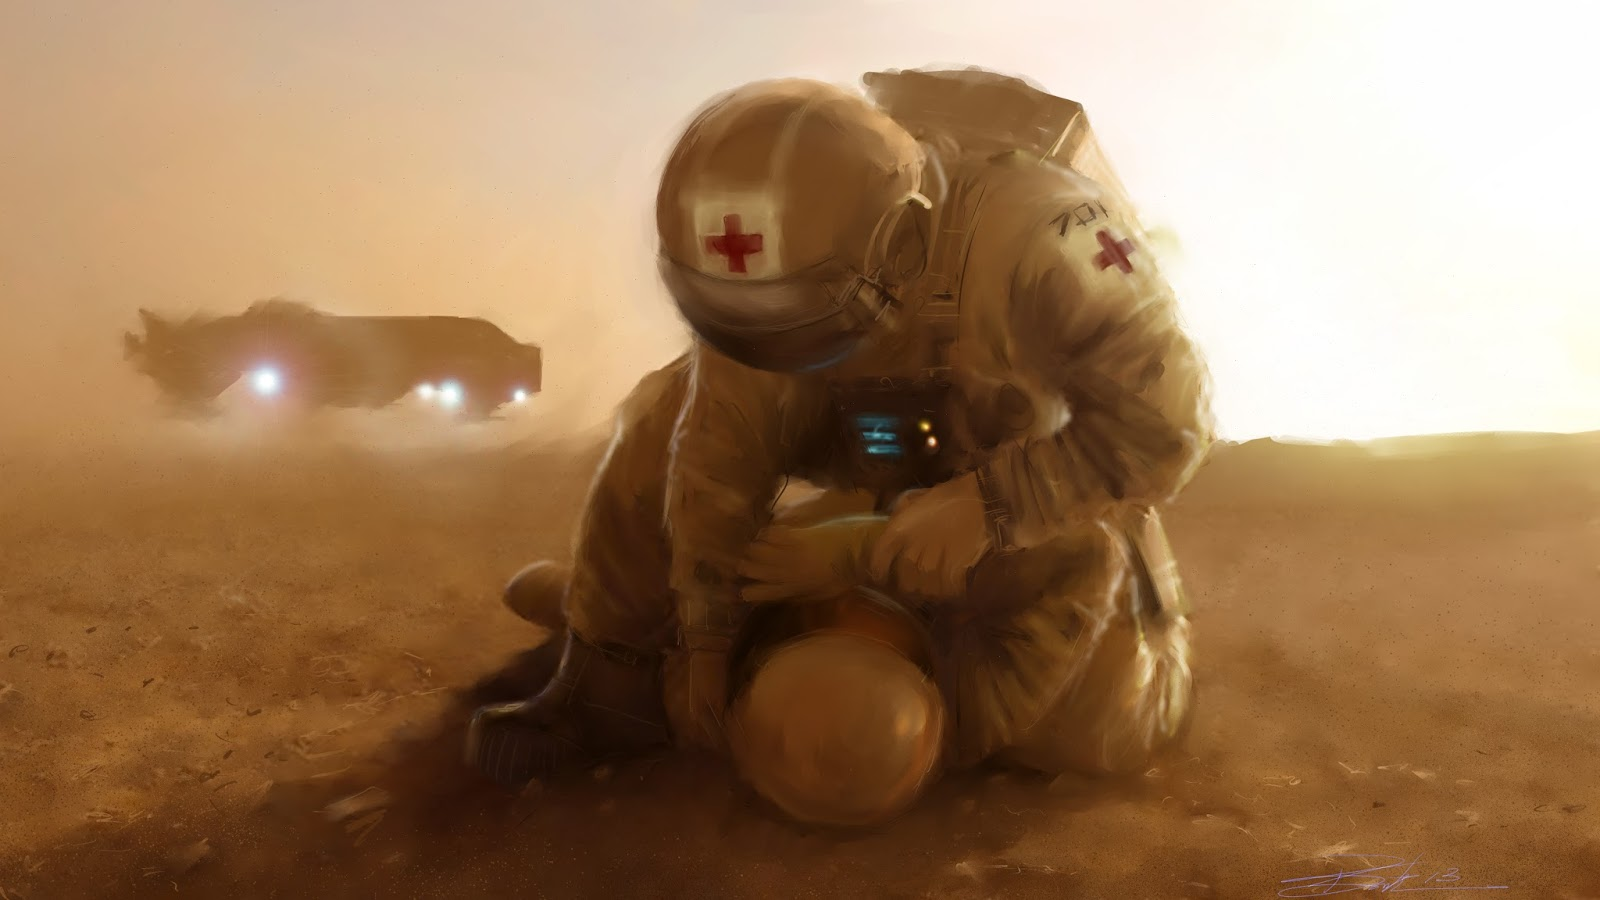 Mars medic by Phil Smith